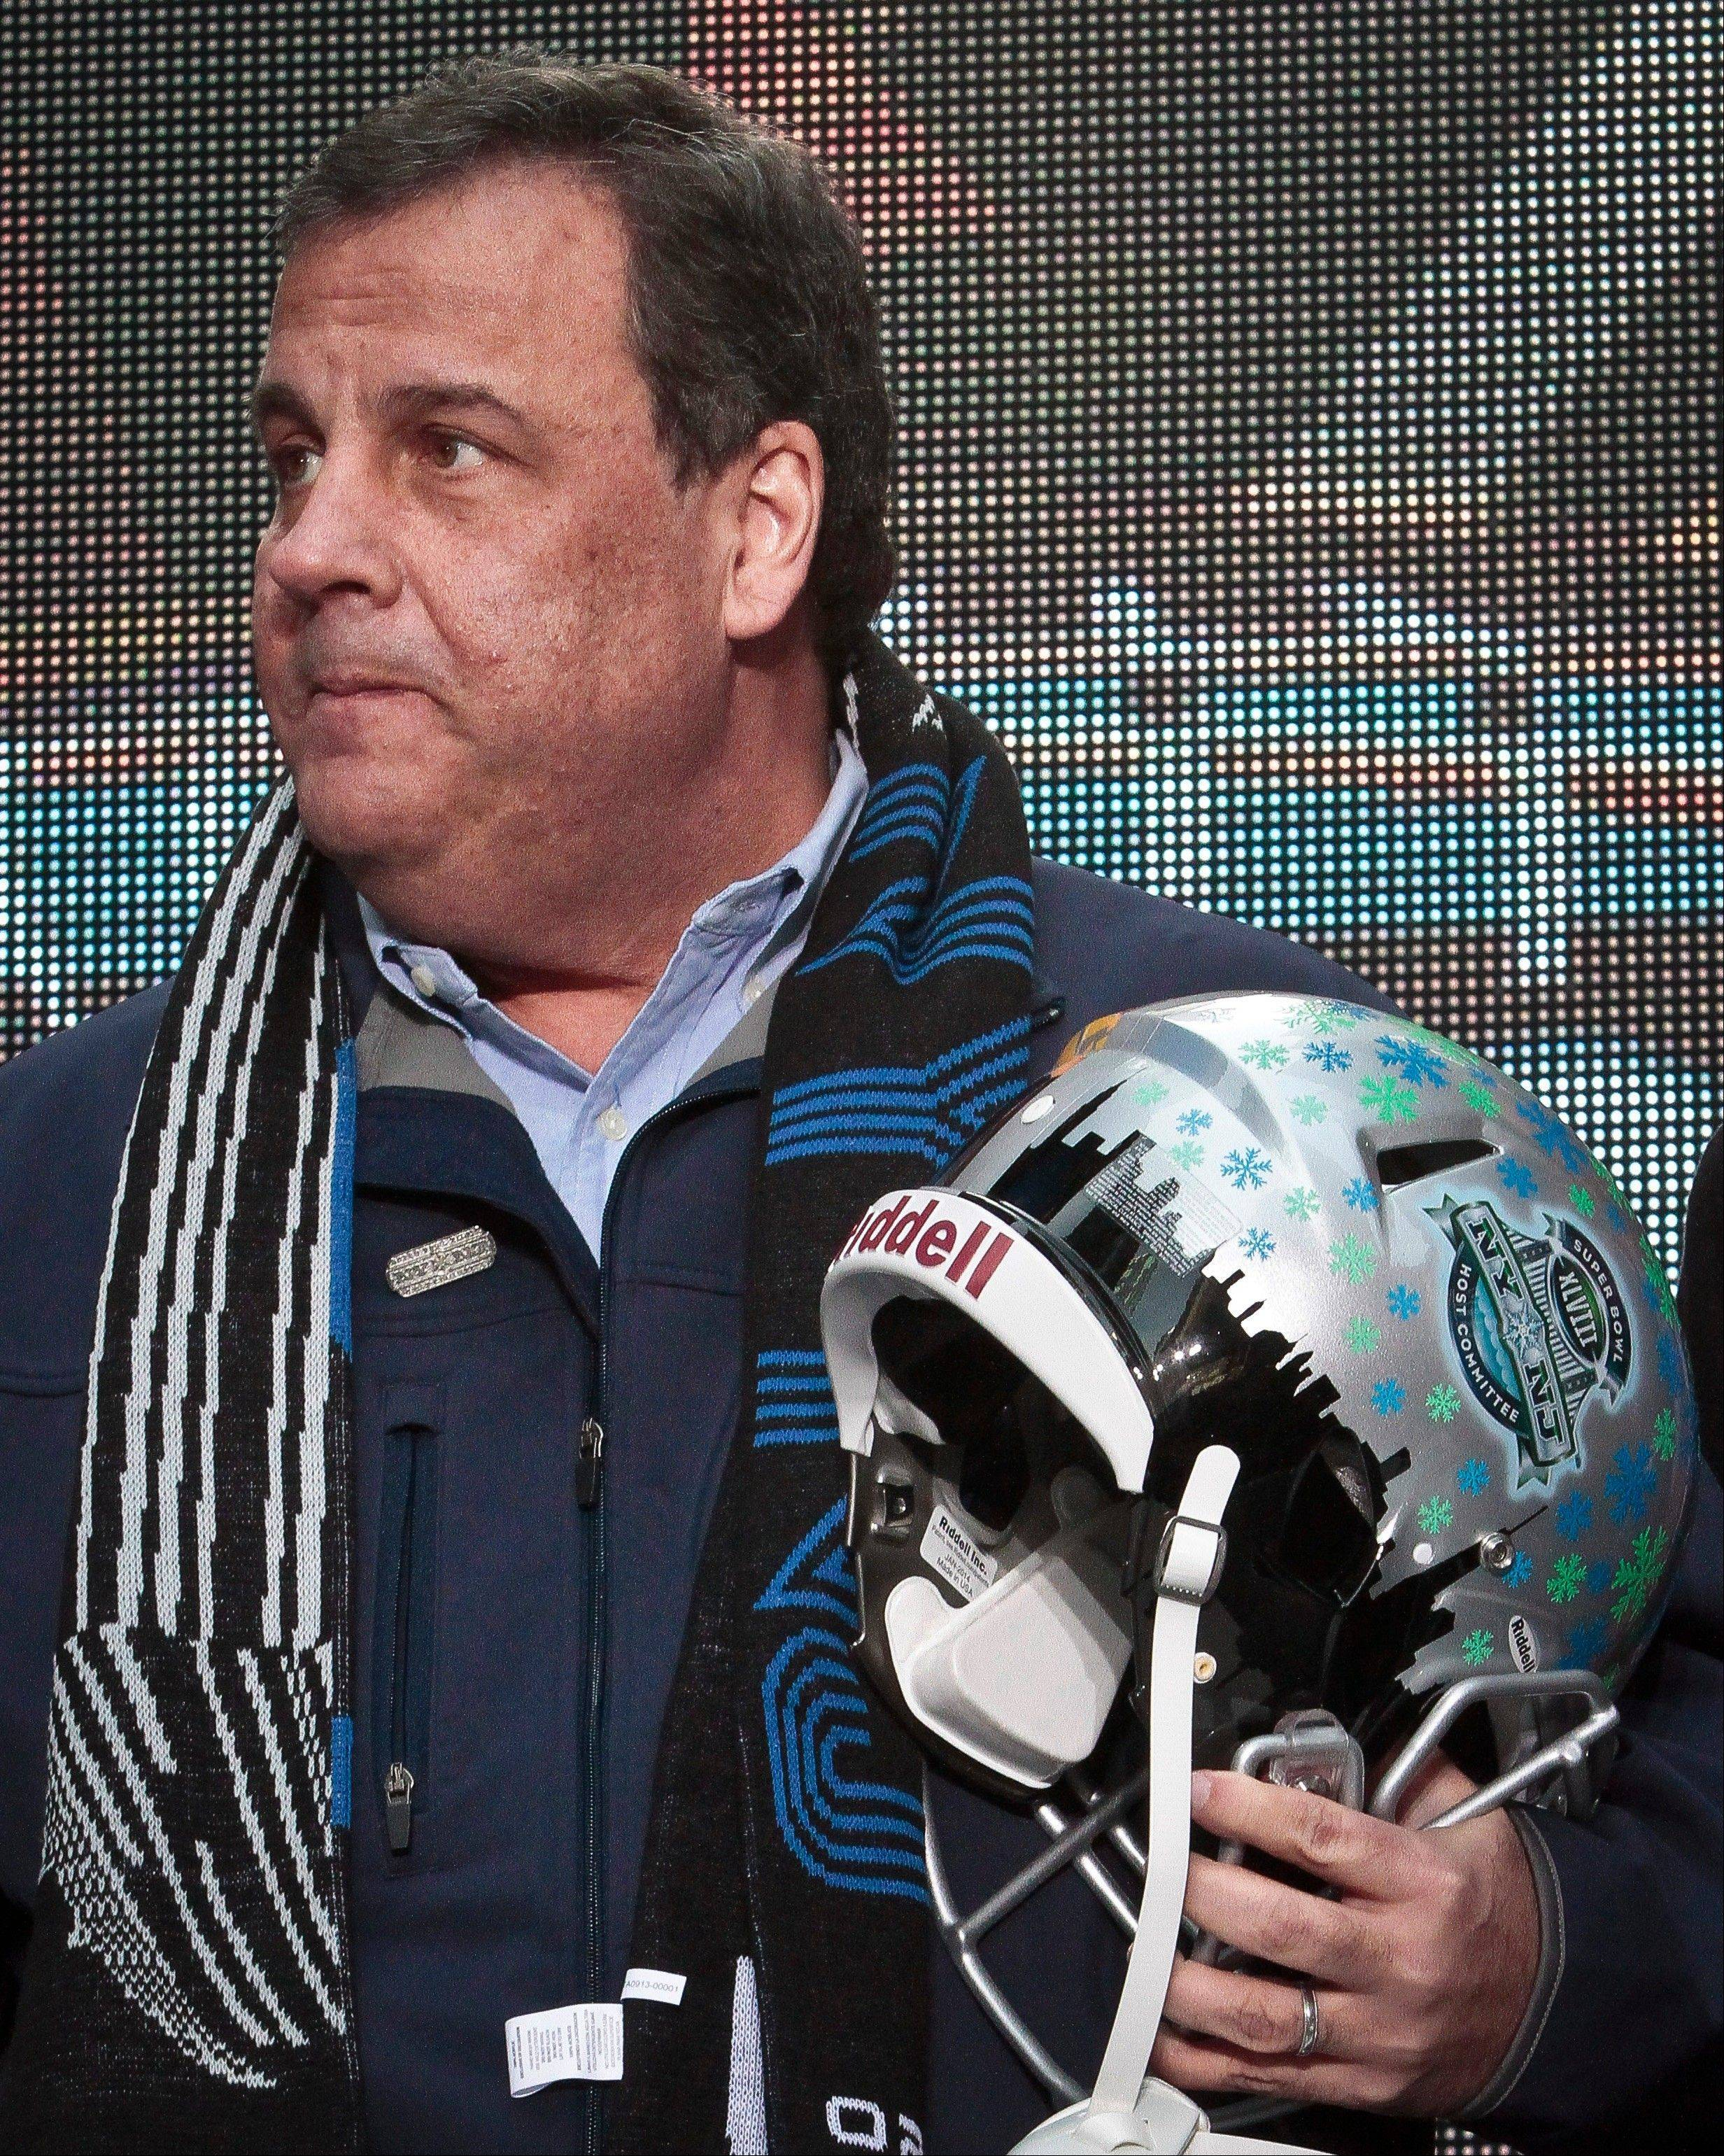 Christie going on offensive over accusation